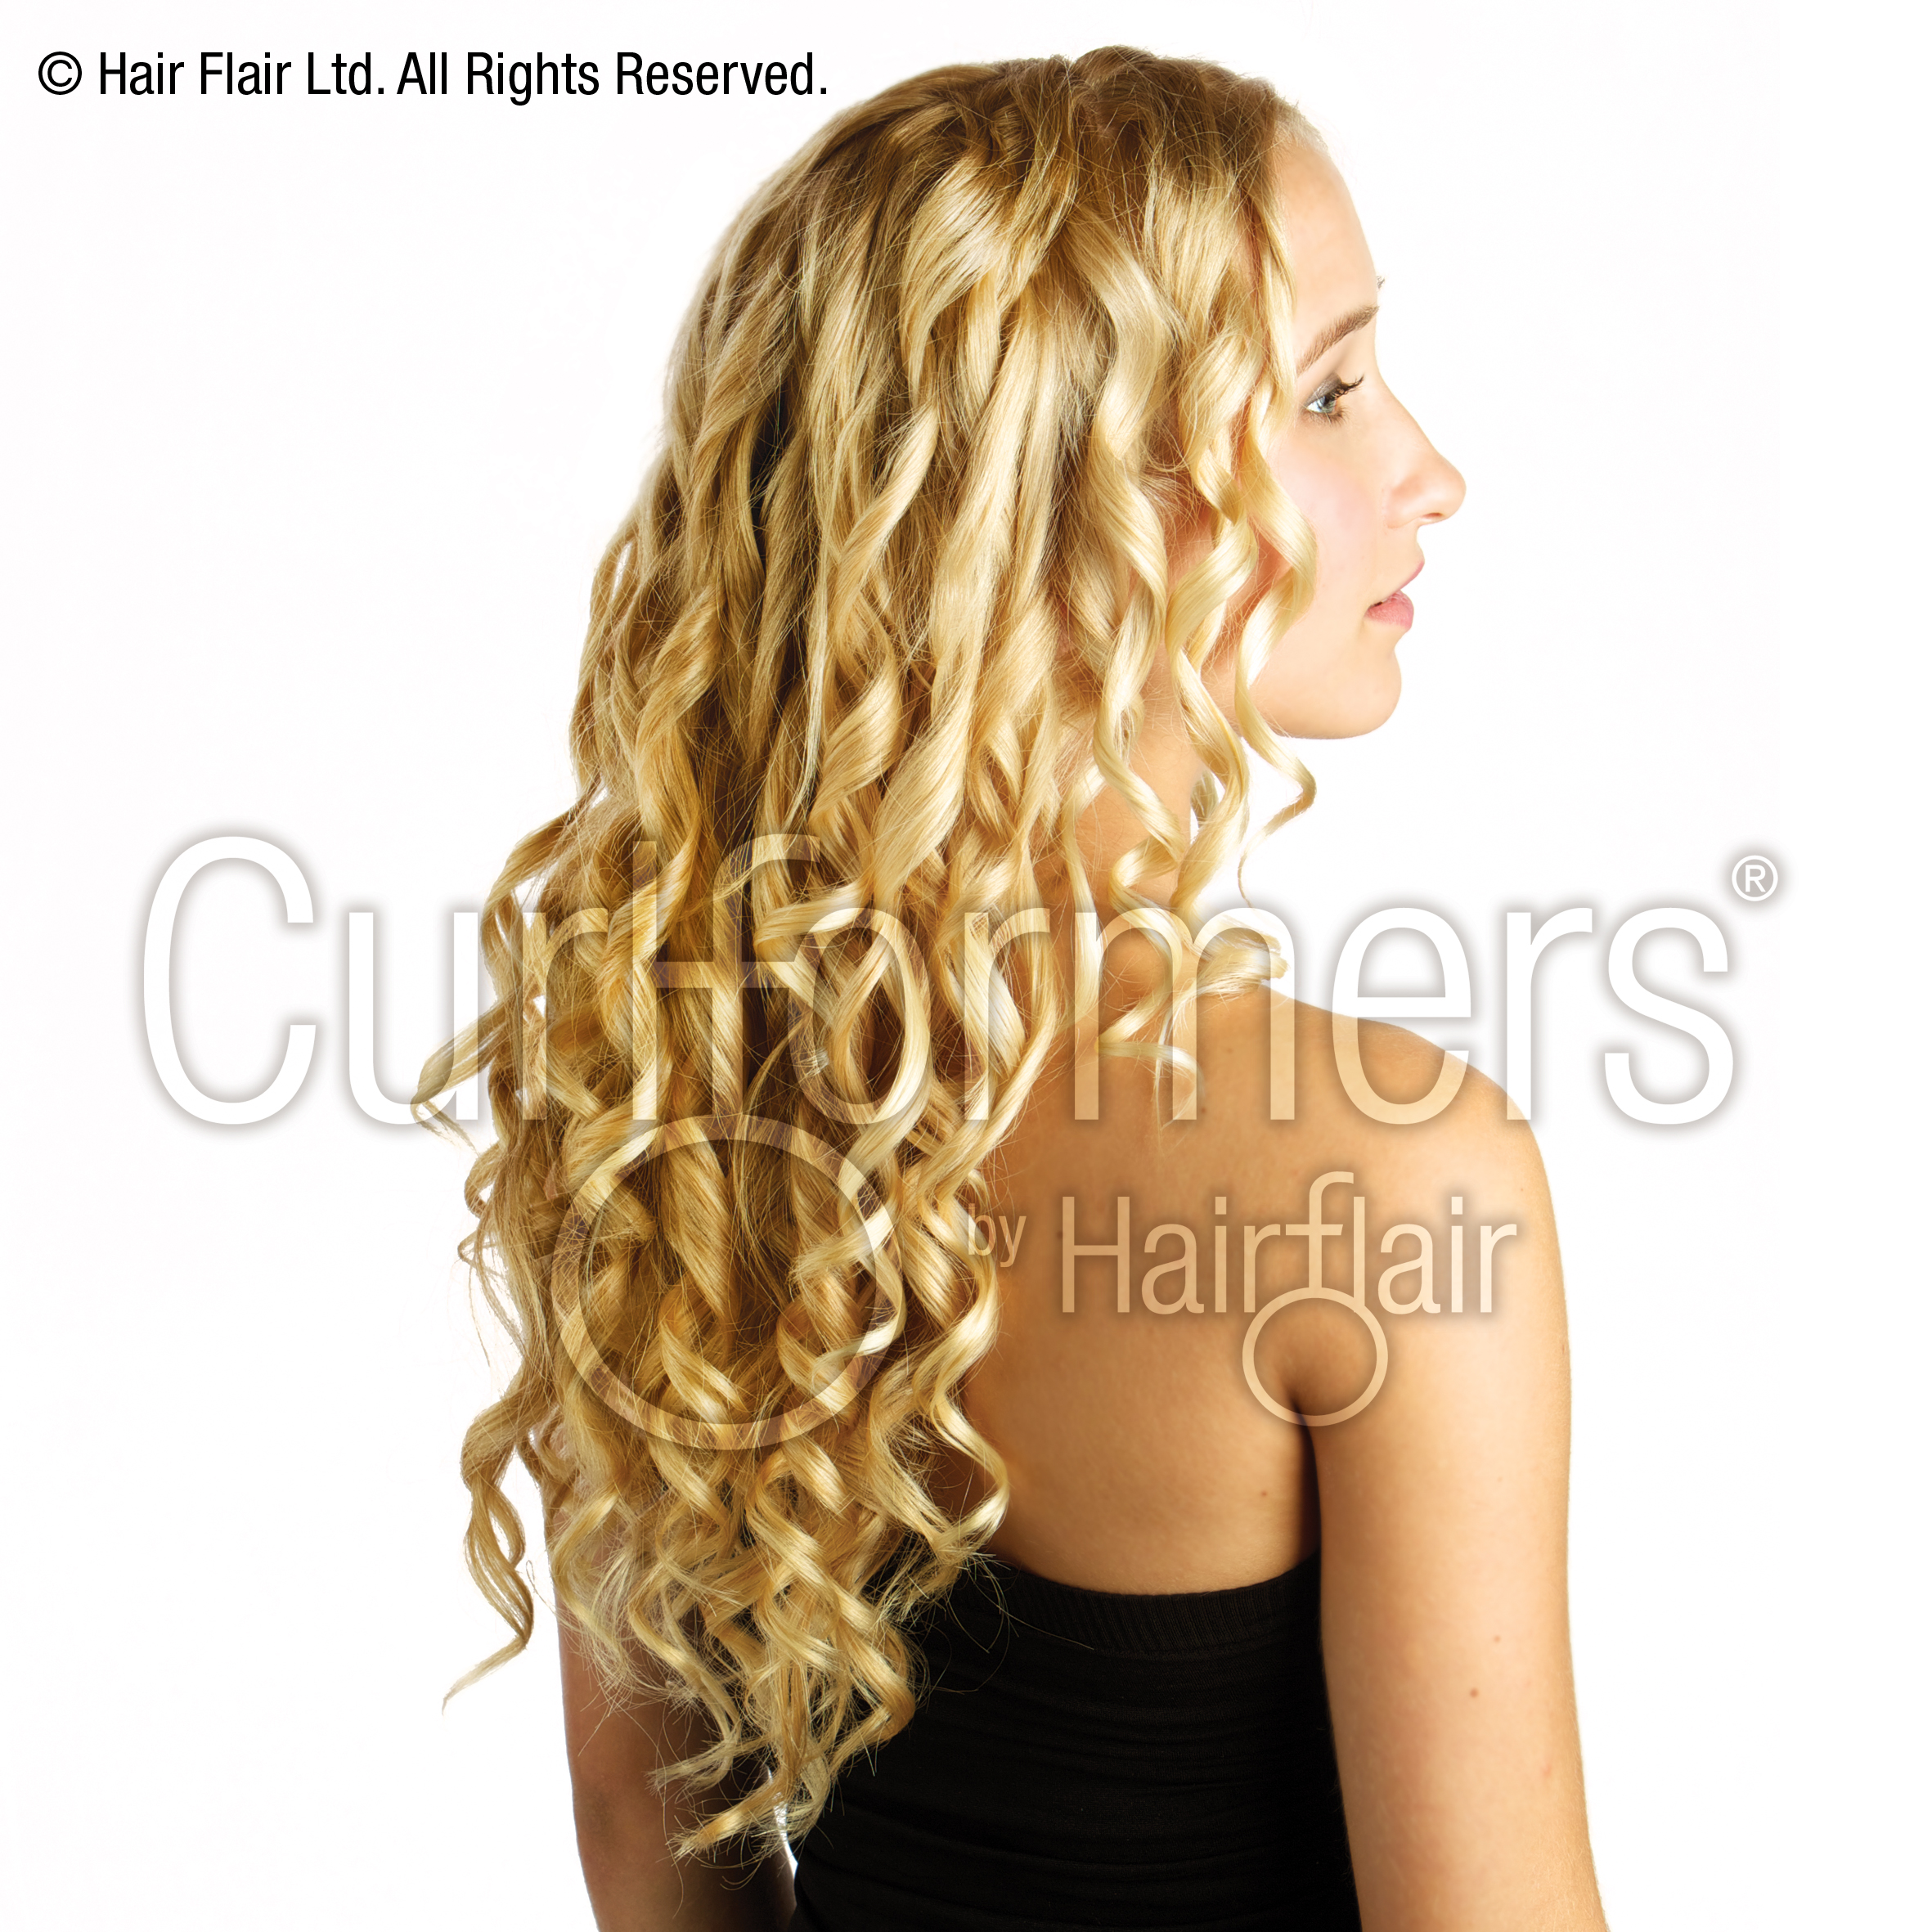 Curlformers Spiral Styling Kit 22 Jessicurl Curly